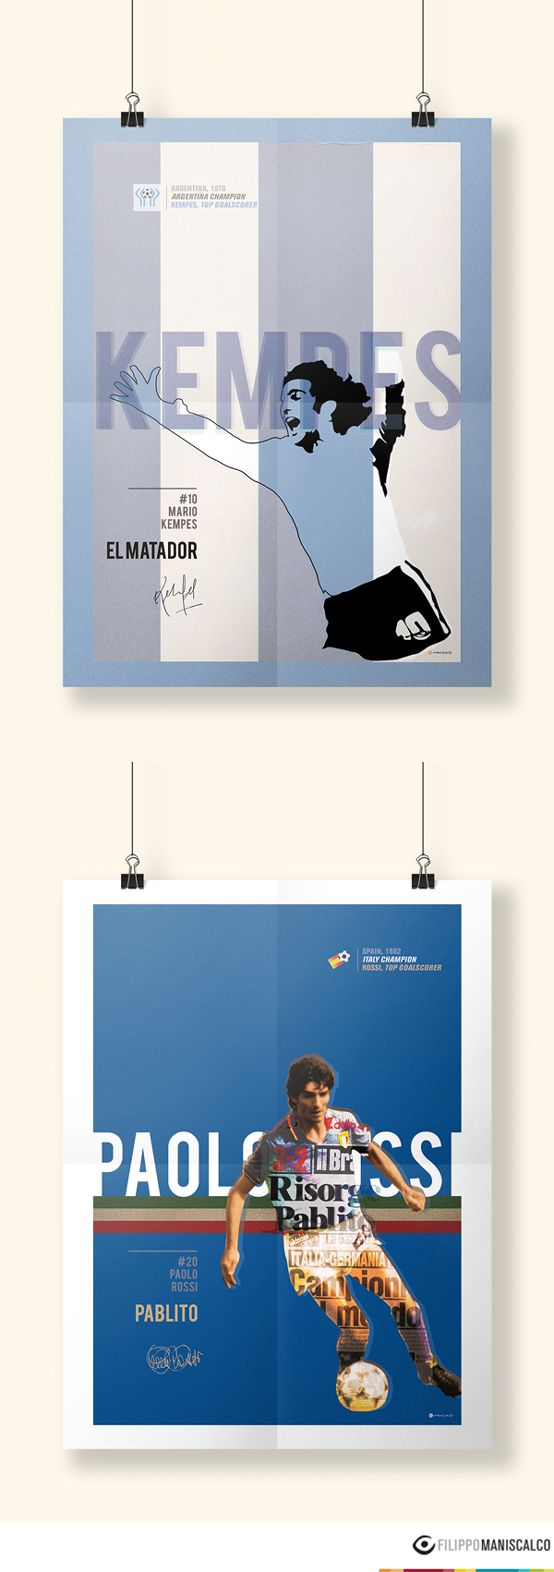 Collection of eleven illustrations on the players of the World Cup in 40 years. Inside each poster there is a feeling that there always exist. #HistoryofWorldCup #MarioKempes #PaoloRossi #Argentina78 #Spagna82